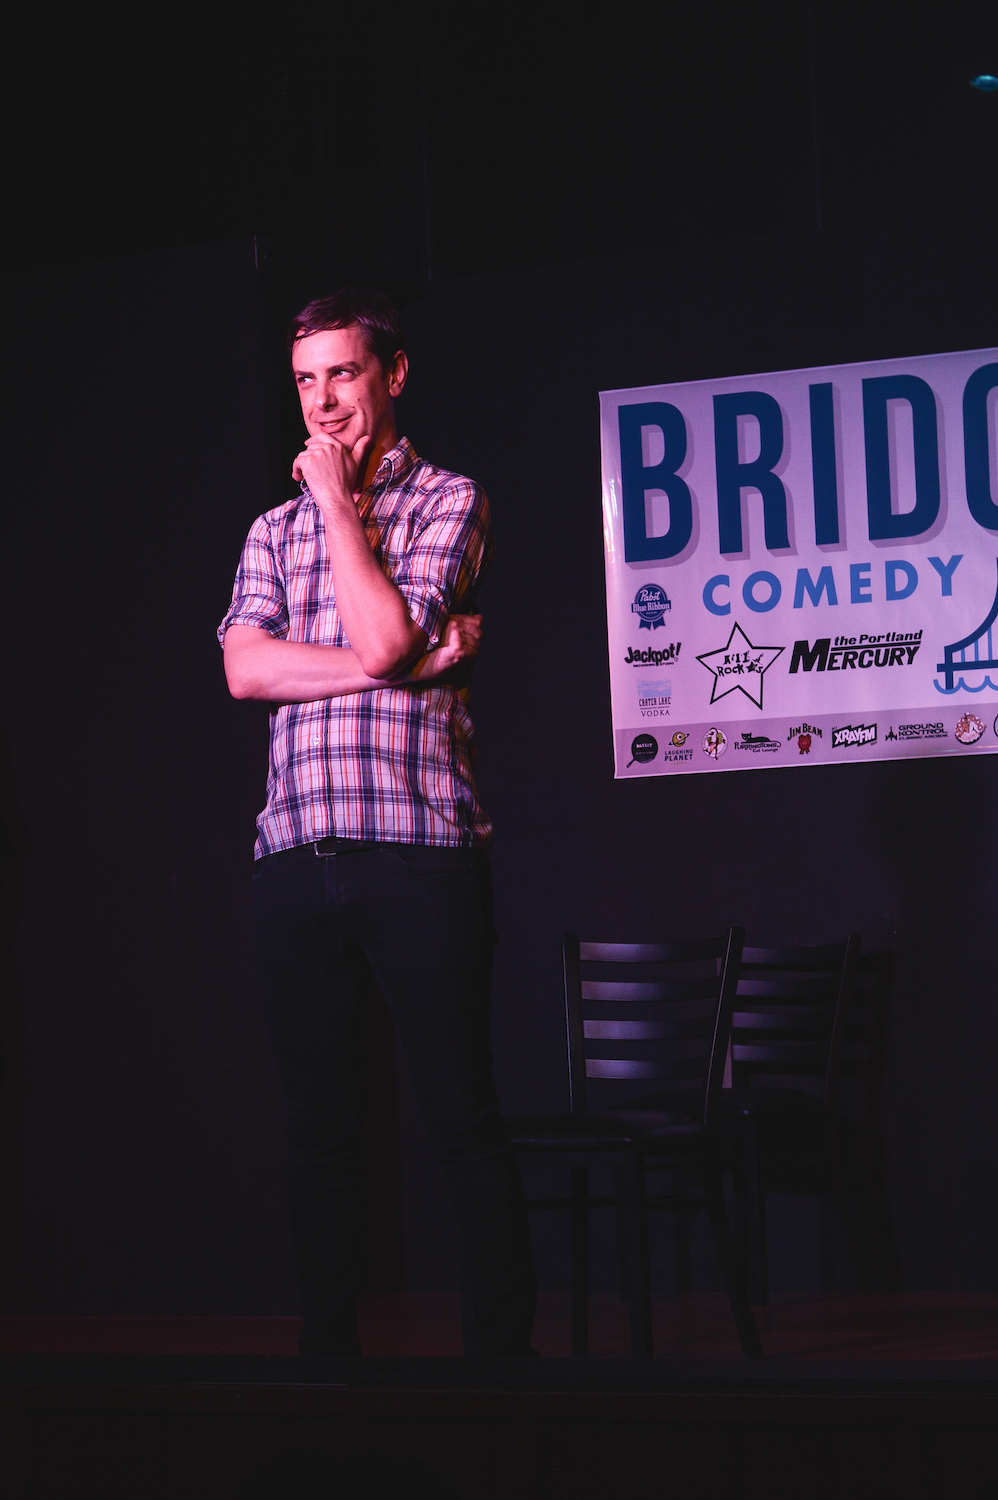 Guest monologist Hutch Harris at Theme Park at Bridgetown Comedy Festival, June 4, 2016. Photo by Deira Bowie.